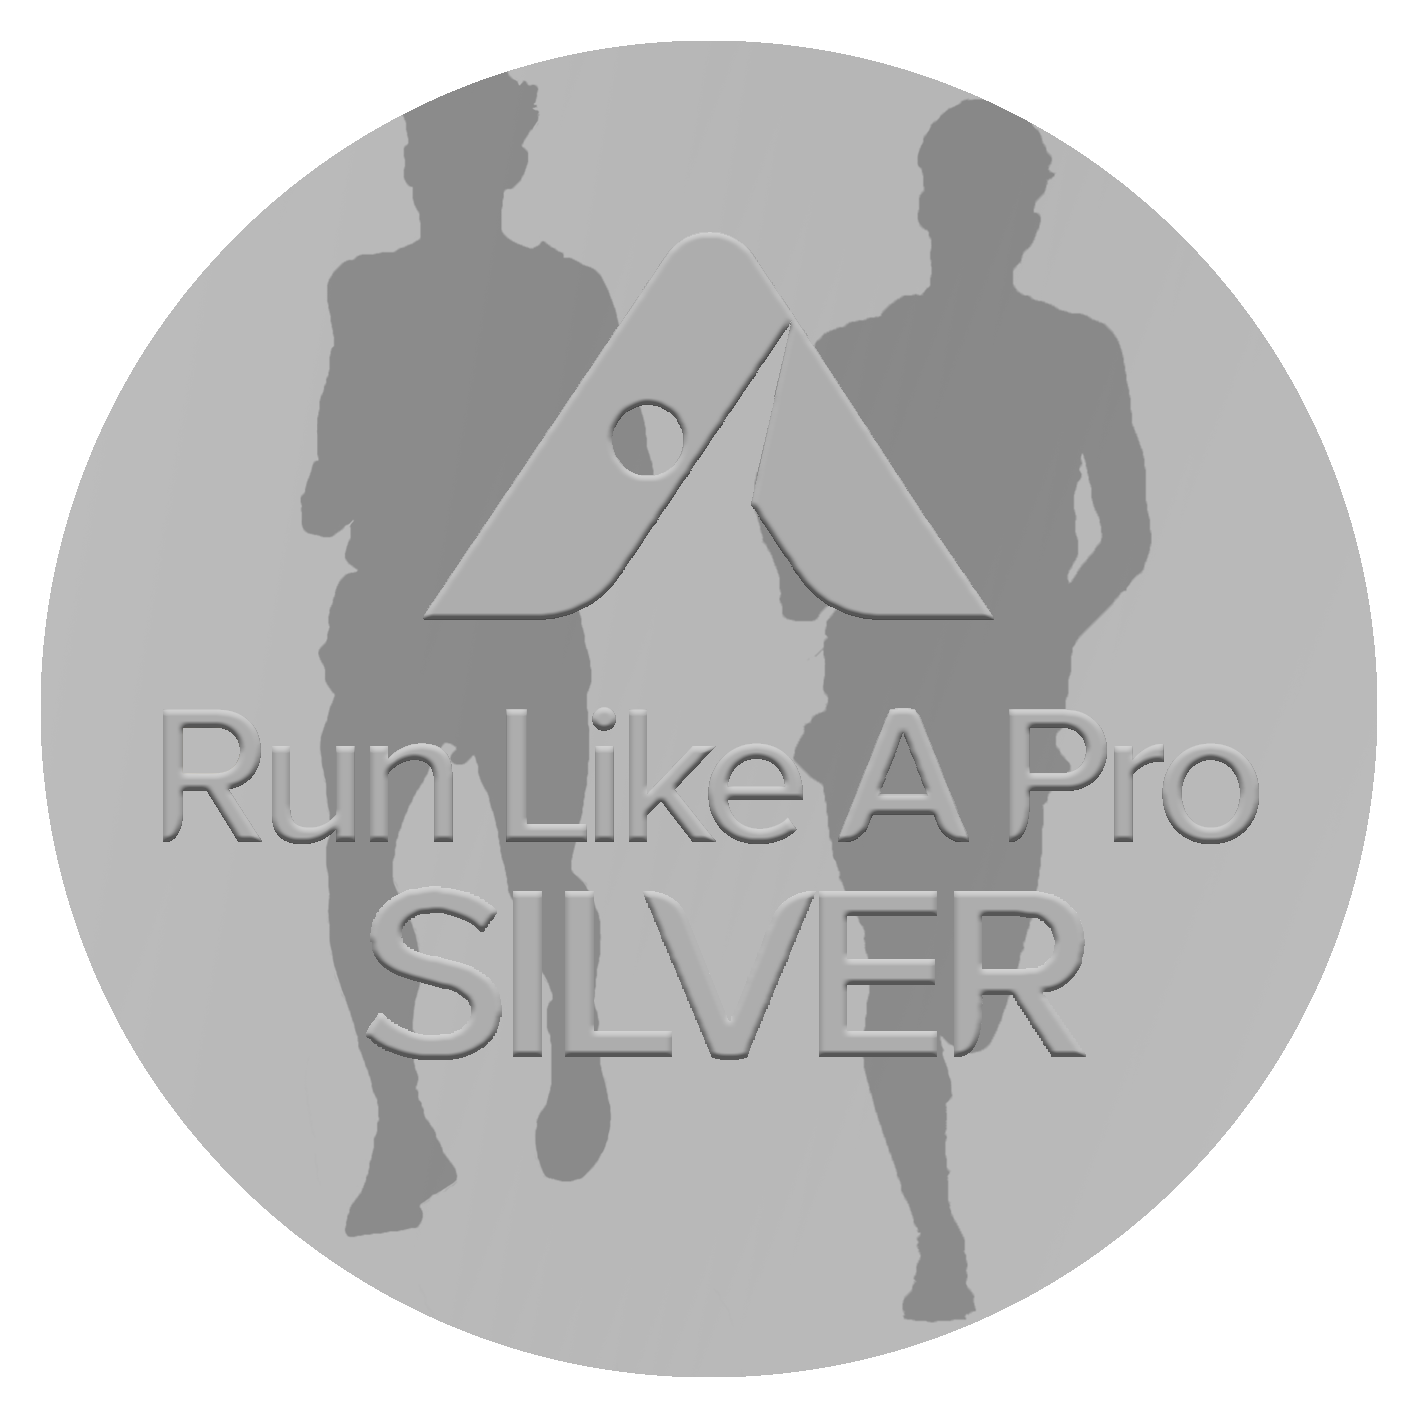 RLAP Silver Button without gradient.png